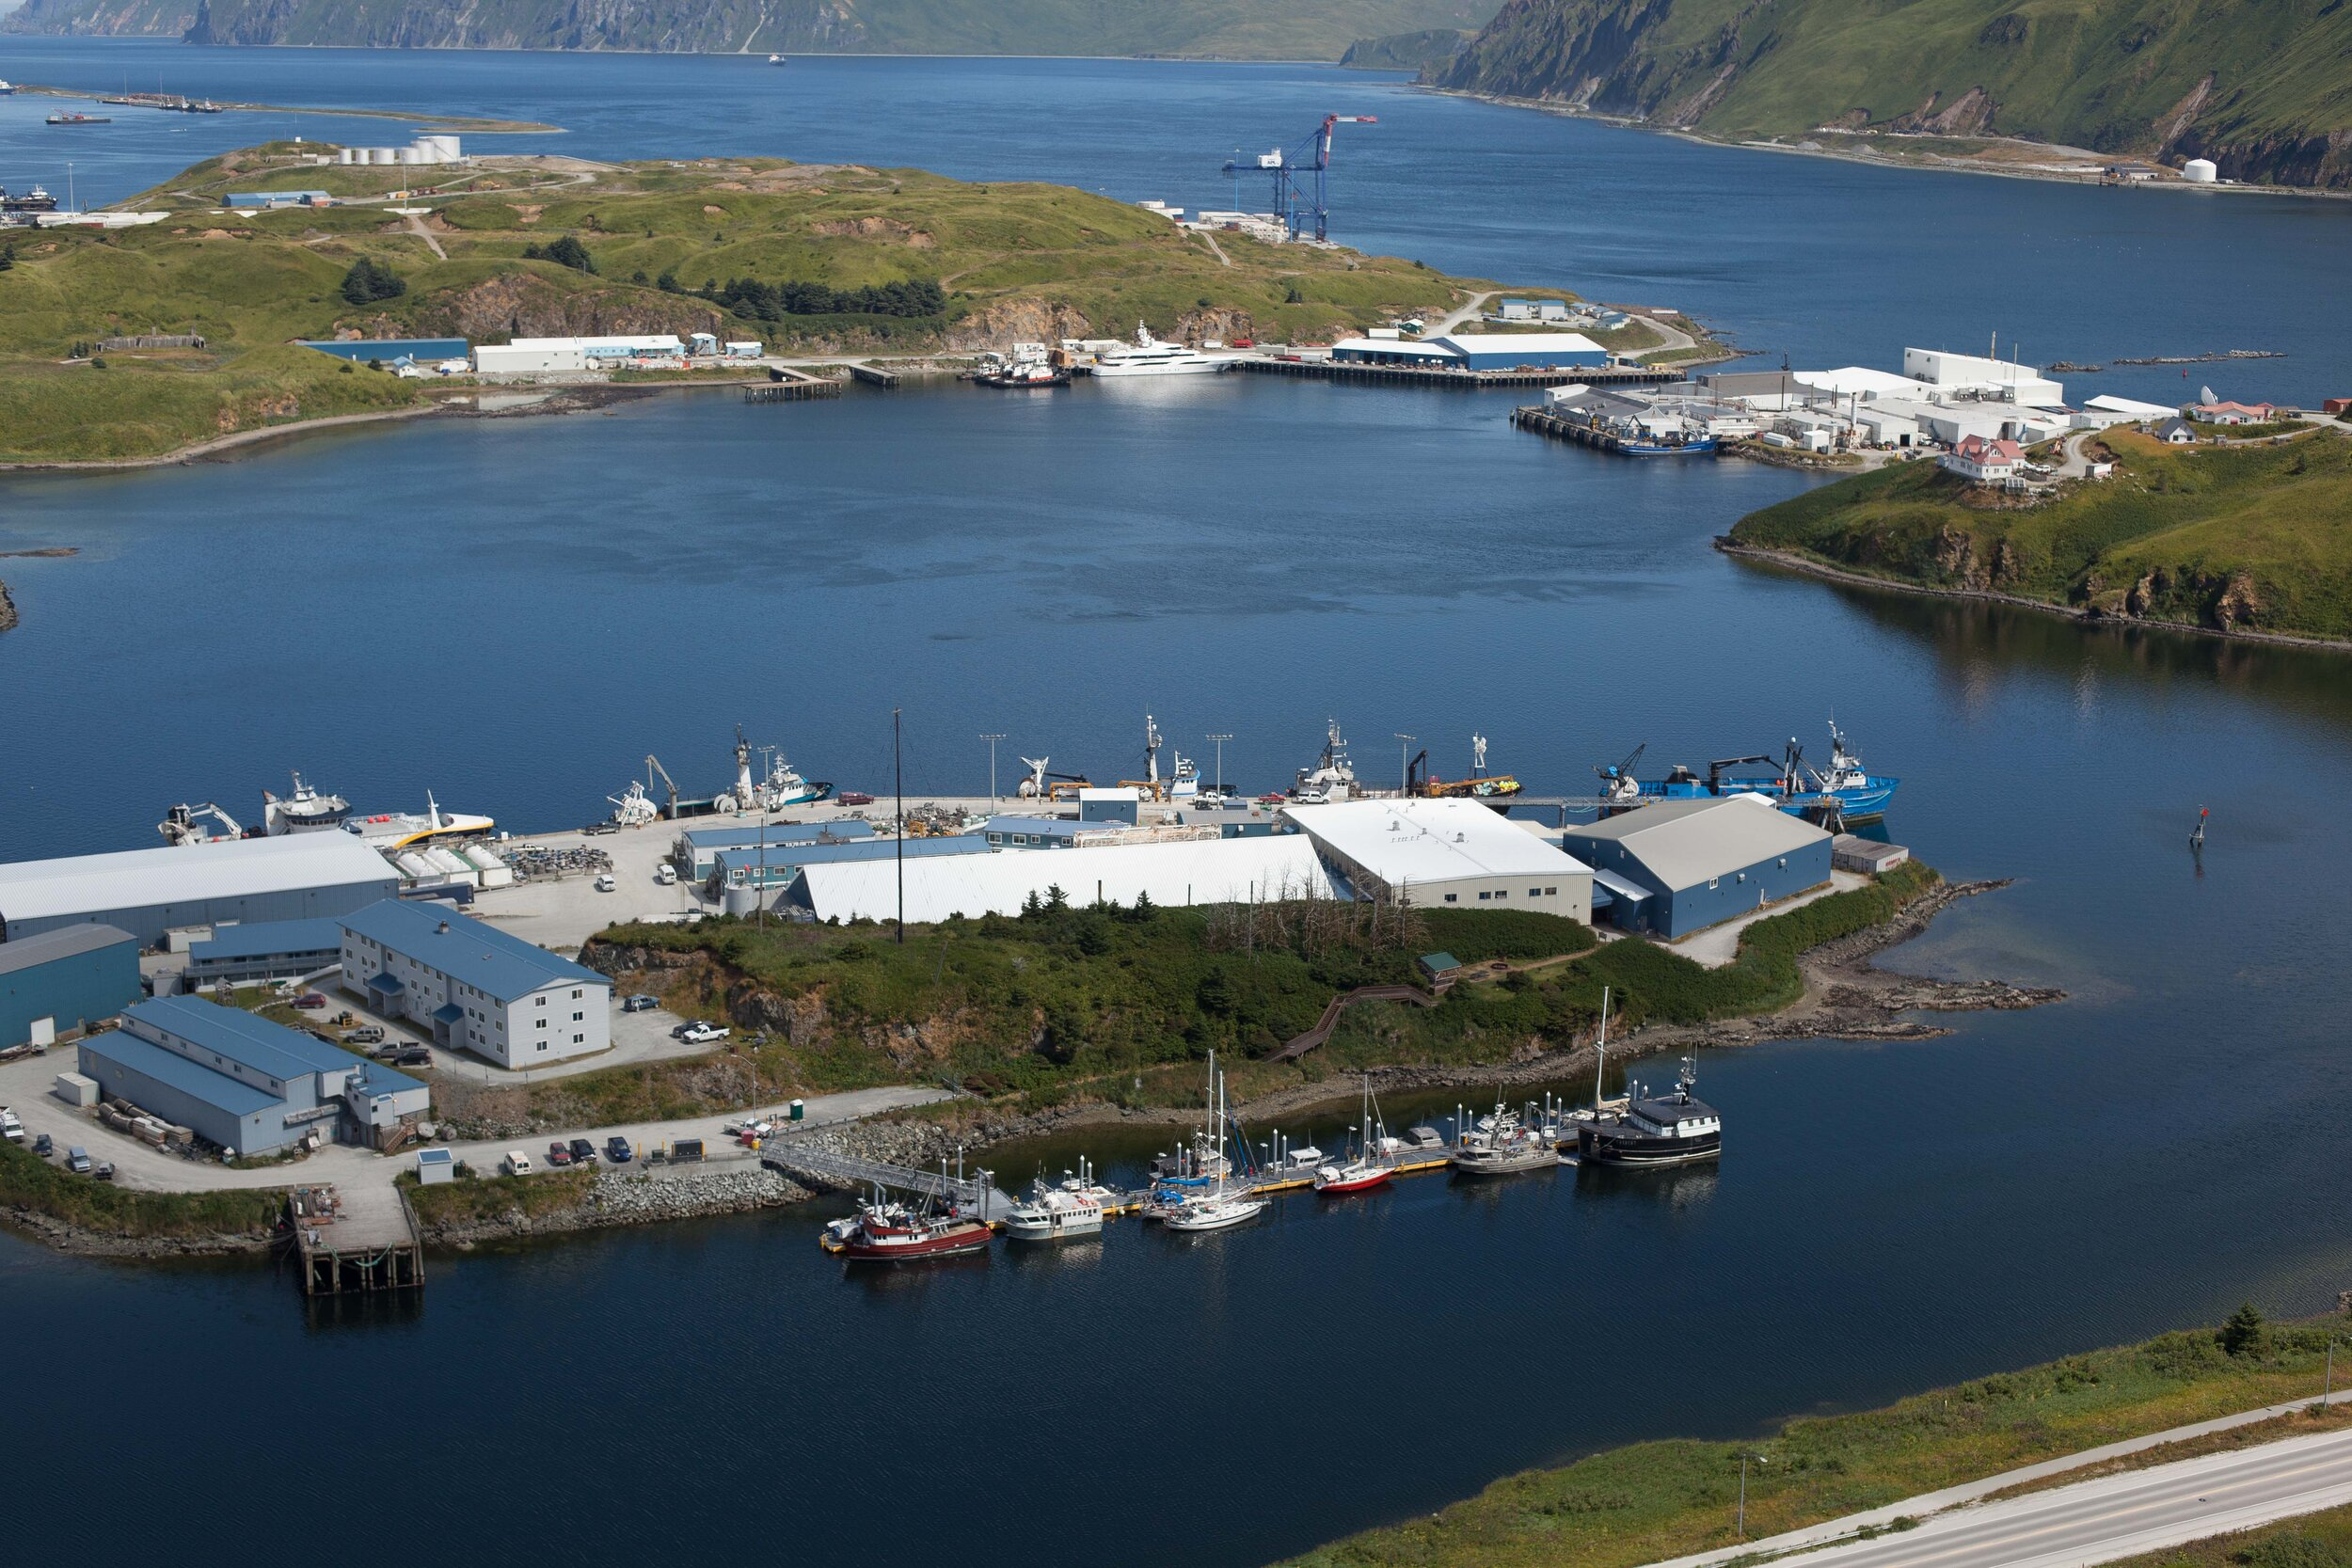 Dutch Harbor's small boat marina from above. Tumbleweed in the center, Nosy Be is the red sailboat just forward of Tumbleweed.